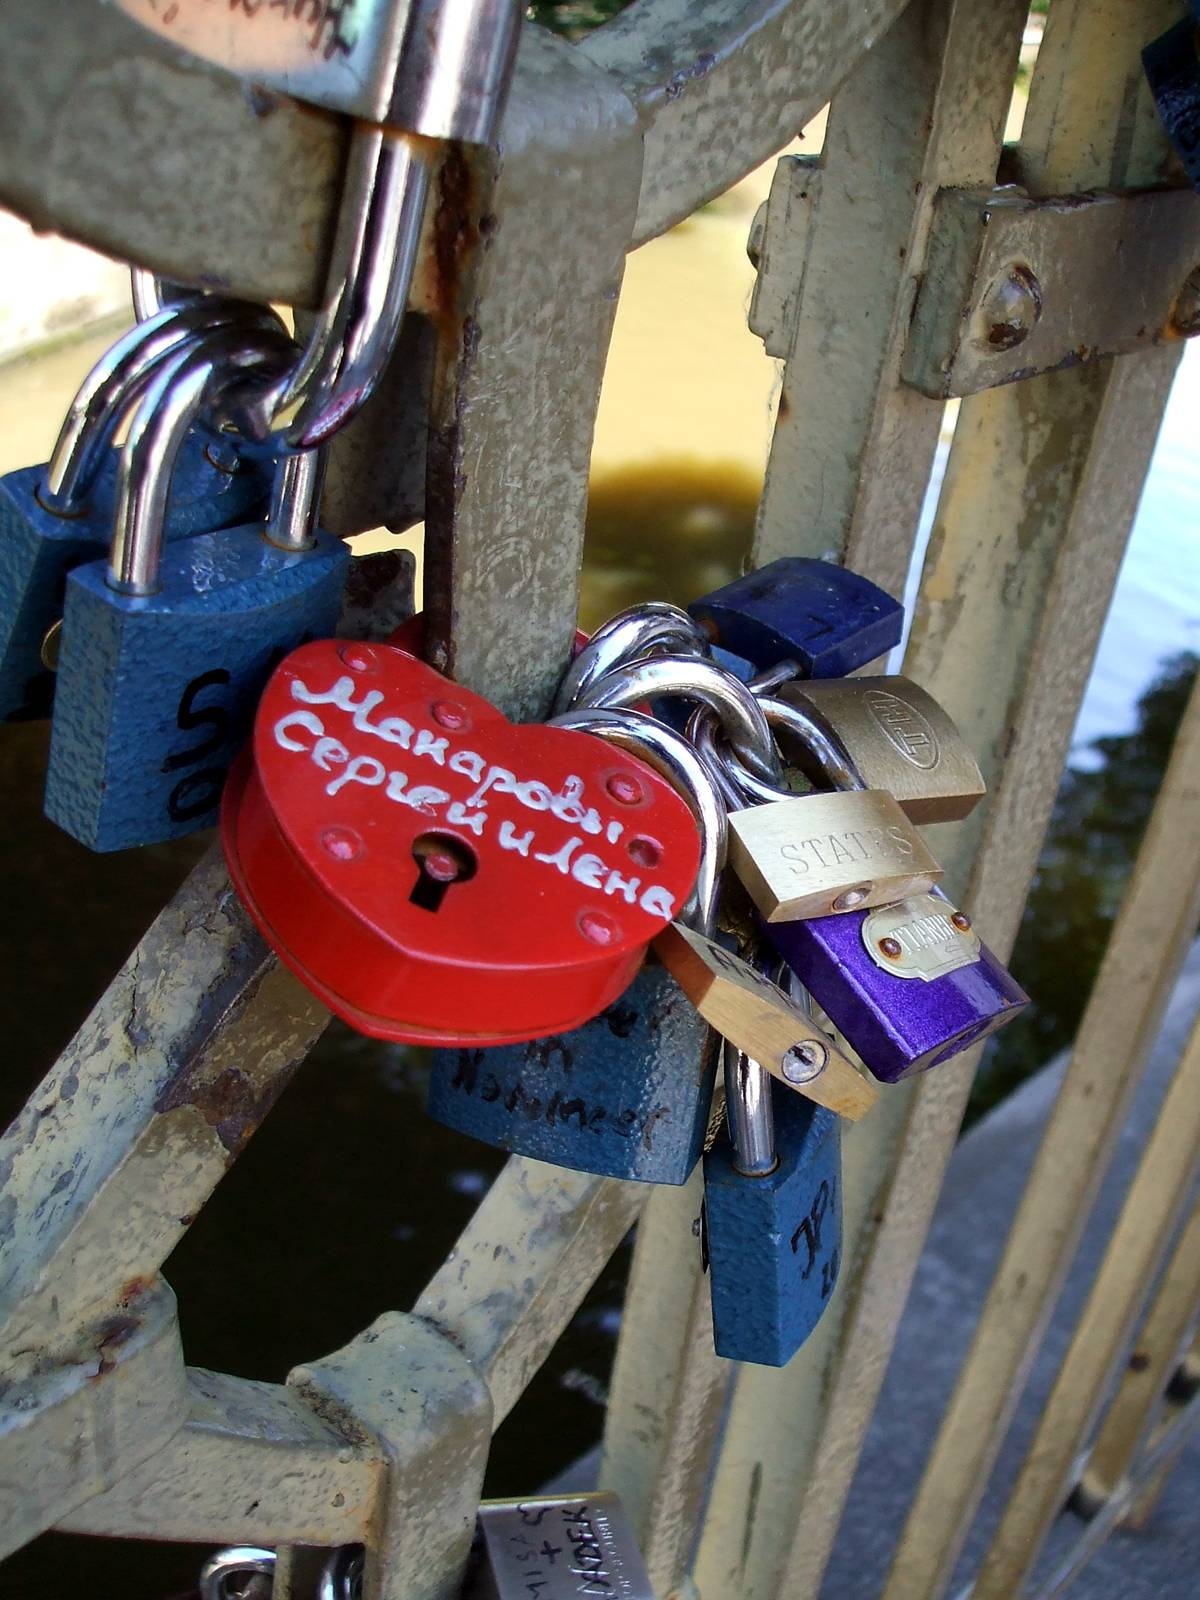 I took this picture of locks left by optimistic lovers on a bridge over the Vltava River in Prague, Czech Republic.